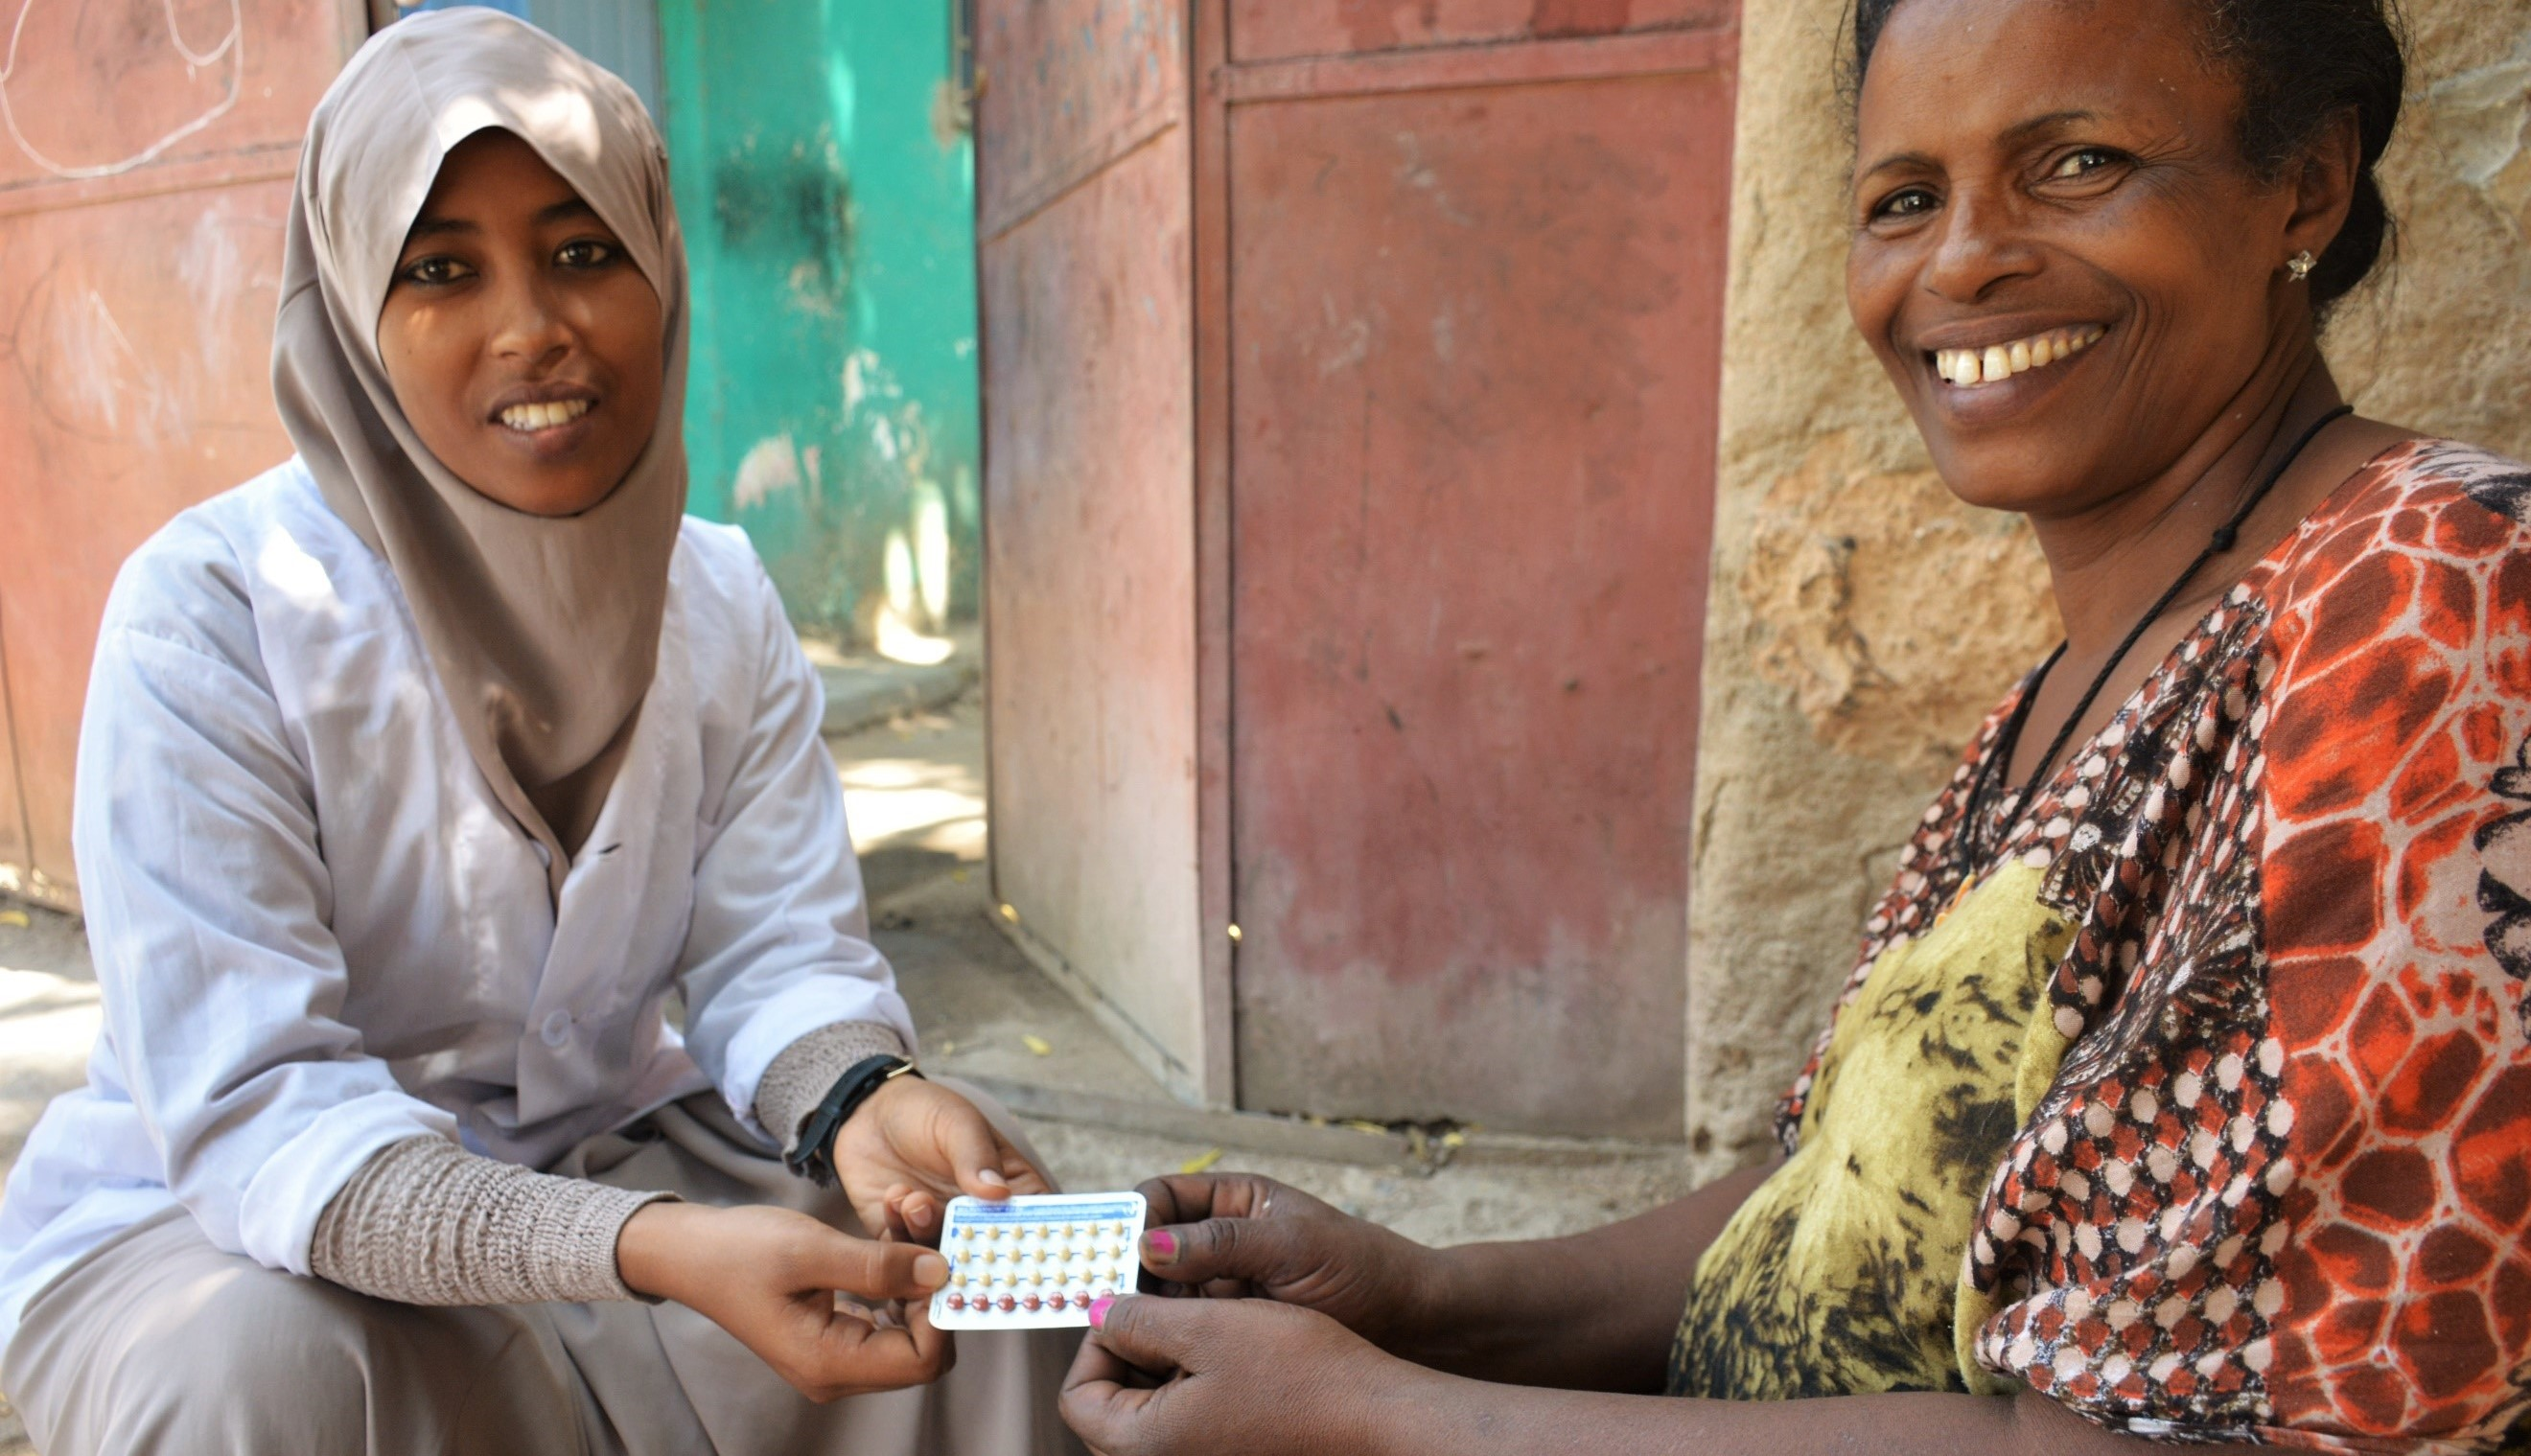 Clinician Zebiba Abdizein (left) and family planning client Mulu Feke (right) chat about family planning services